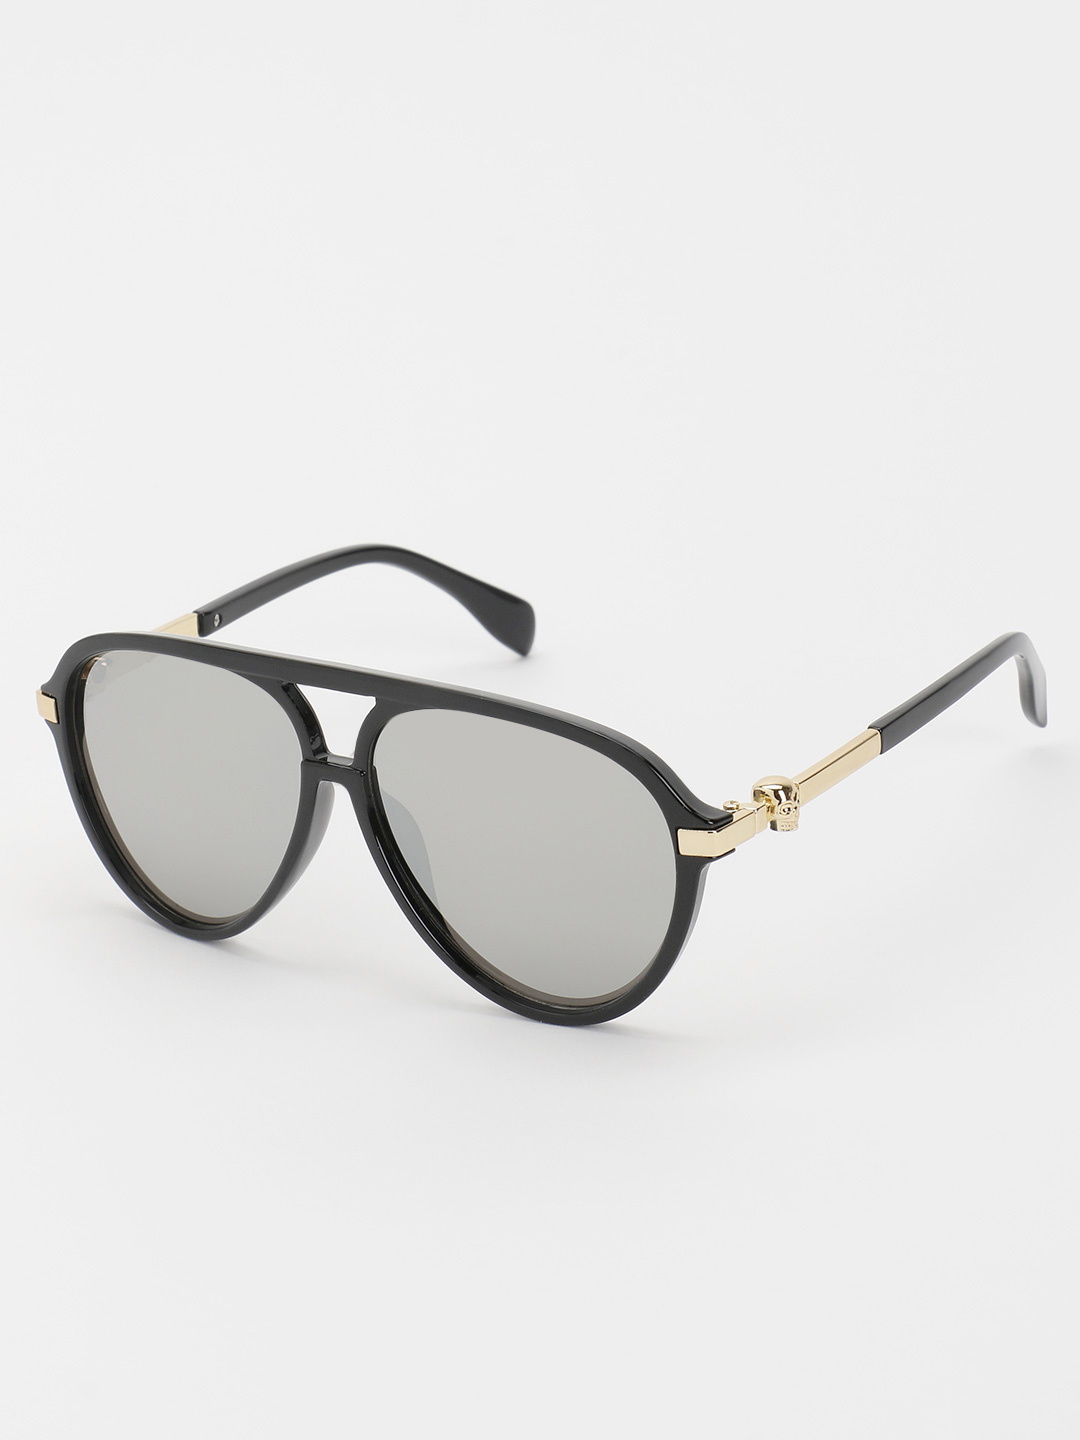 KOOVS Black Mirrored Lens Pilot Sunglasses 1